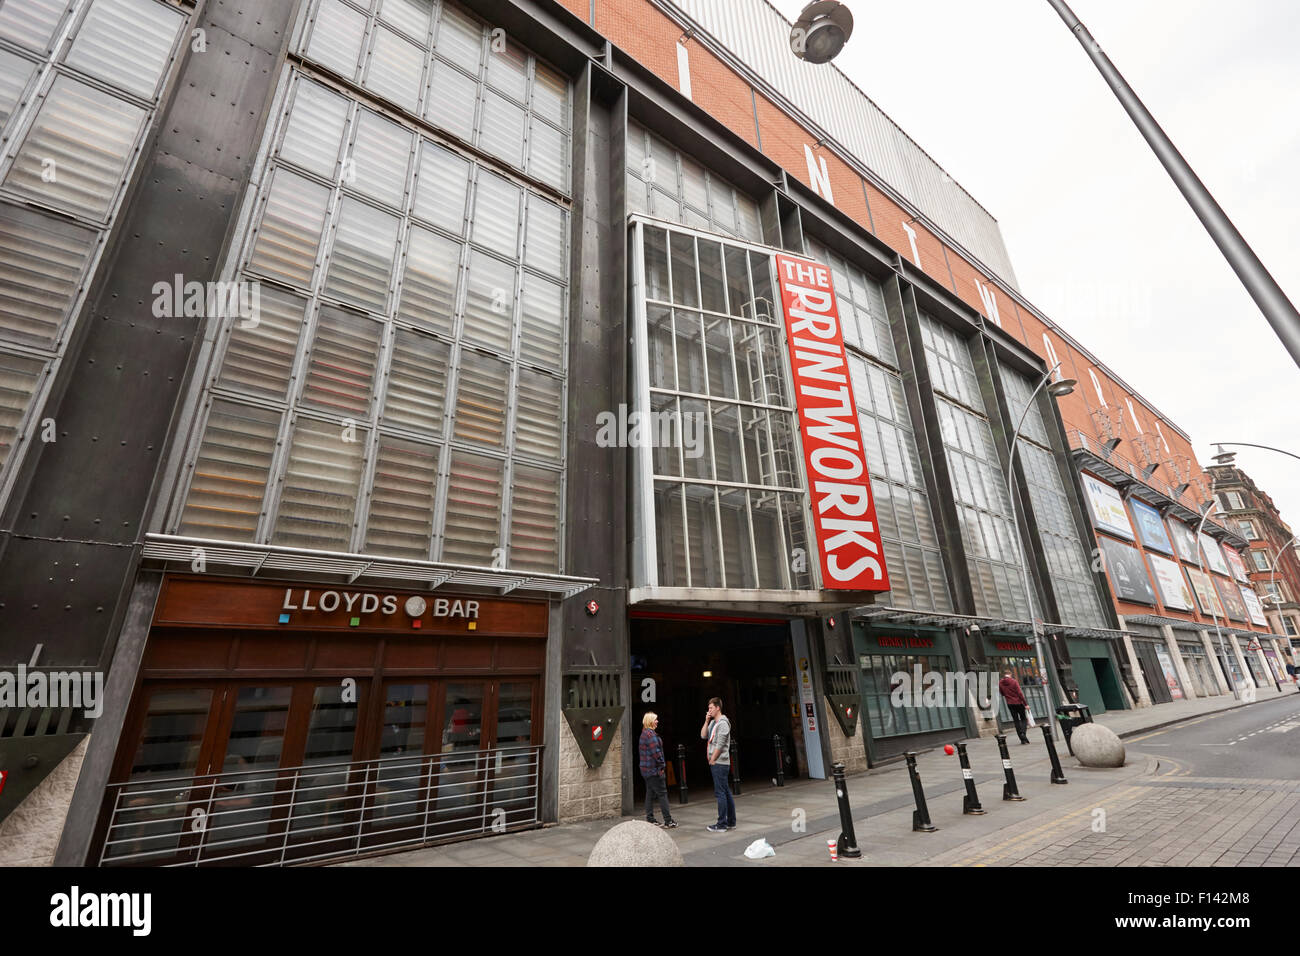 The printworks entertainment complex Manchester uk - Stock Image